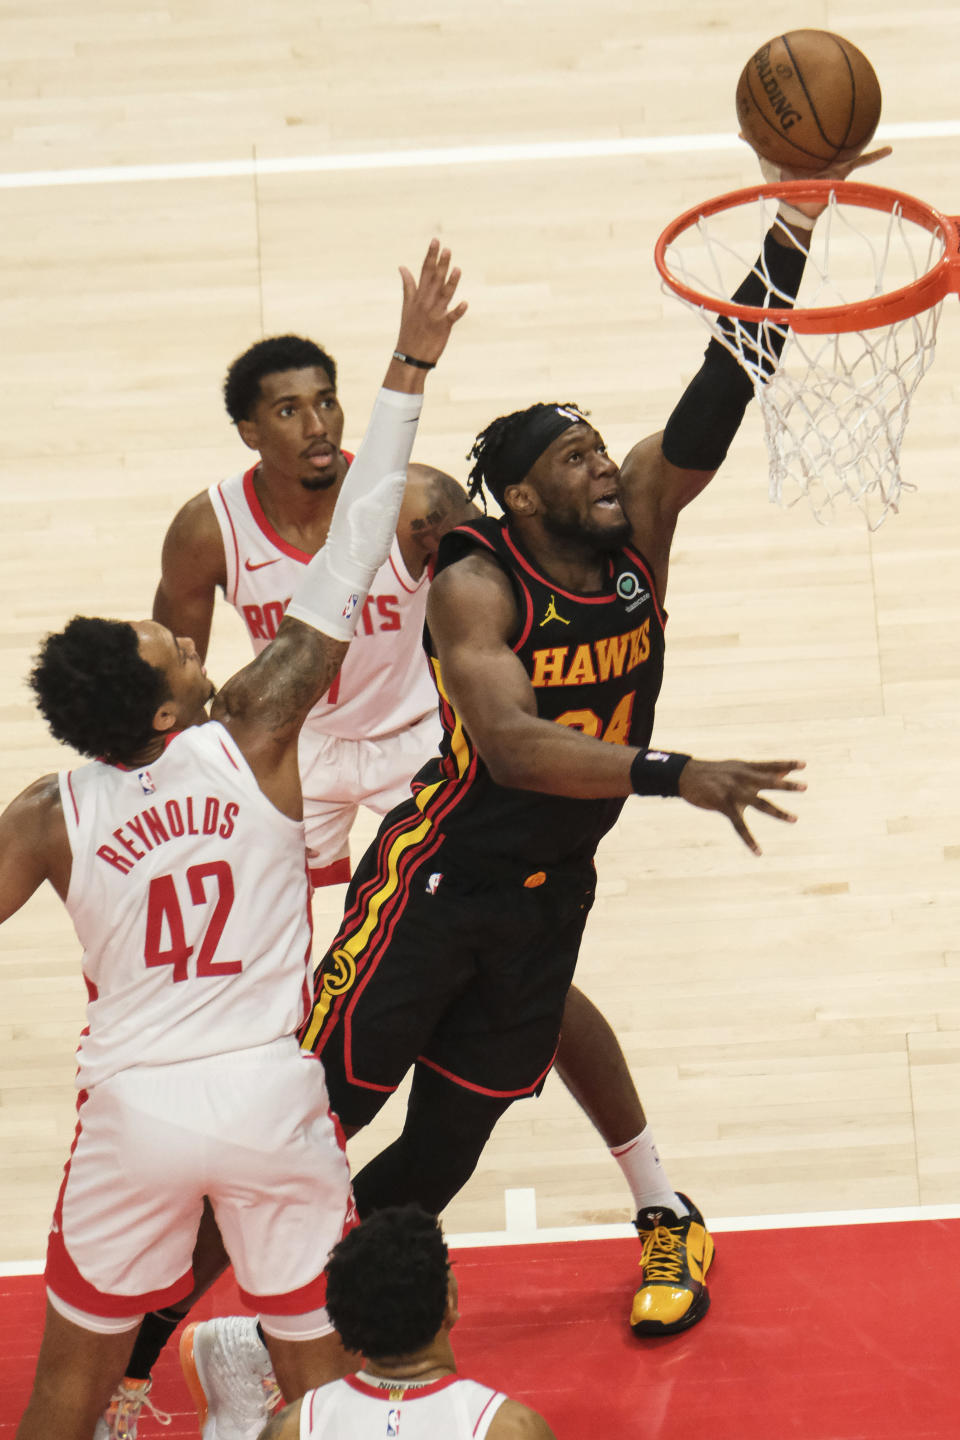 Atlanta Hawks forward Bruno Fernando (24) goes up for the slam against the Houston Rockets during the second half of an NBA basketball game on Sunday, May 16, 2021, in Atlanta. (AP Photo/Ben Gray)